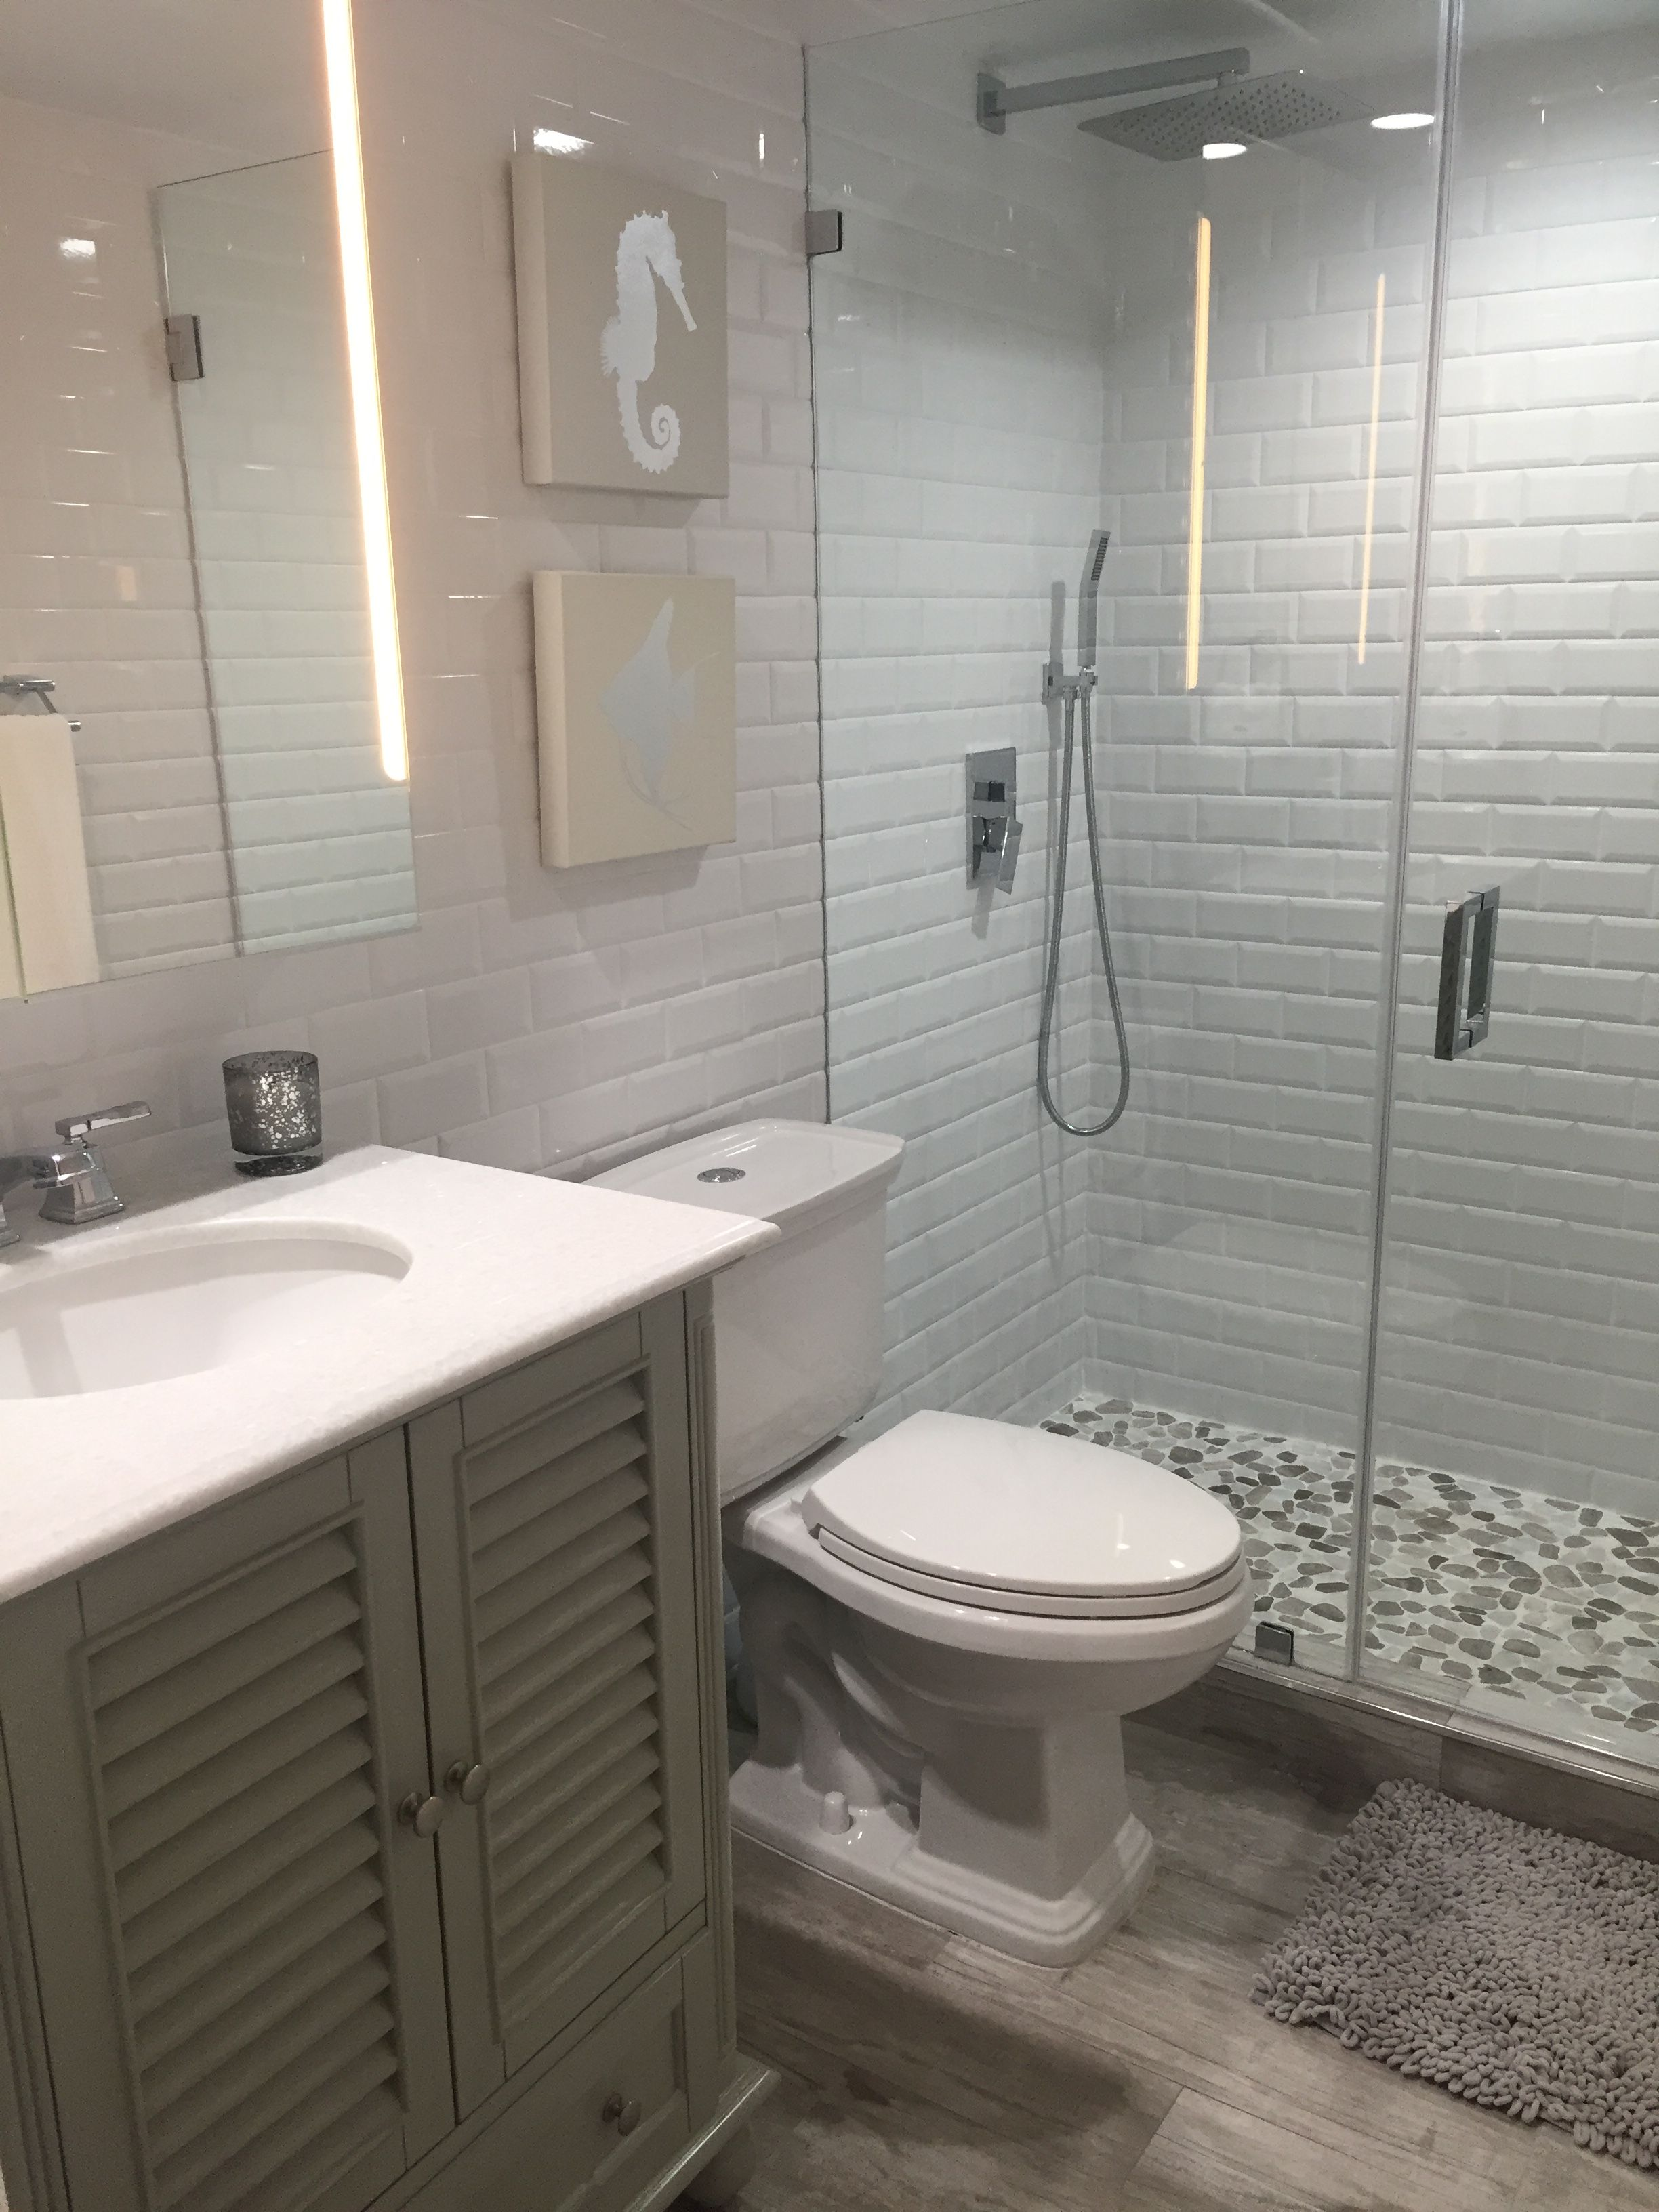 Plano bathroom remodel contractors, Plano bathroom remodeling, Plano bathroom remodeling quote.